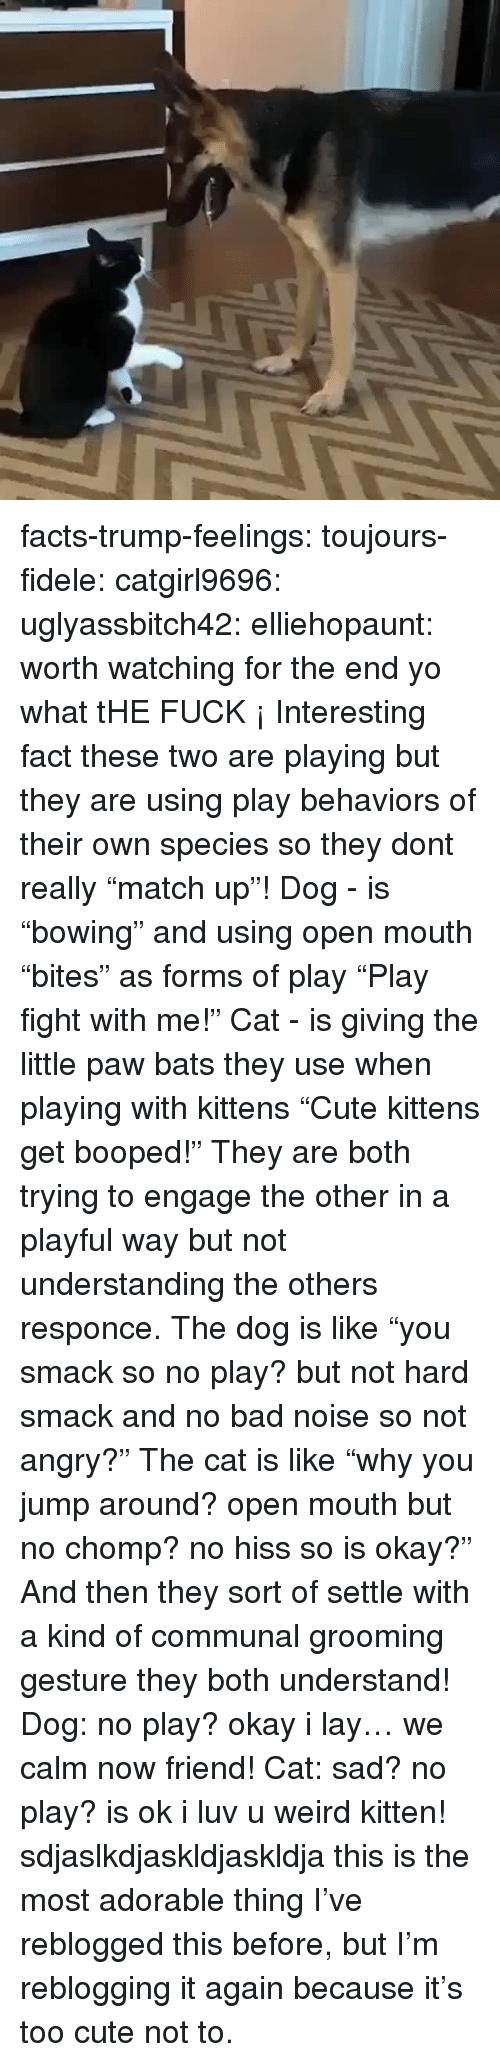 "playful: facts-trump-feelings:  toujours-fidele:  catgirl9696:  uglyassbitch42:  elliehopaunt: worth watching for the end  yo what tHE FUCK ¡   Interesting fact these two are playing but they are using play behaviors of their own species so they dont really ""match up""! Dog - is ""bowing"" and using open mouth ""bites"" as forms of play  ""Play fight with me!"" Cat - is giving the little paw bats they use when playing with kittens ""Cute kittens get booped!"" They are both trying to engage the other in a playful way but not understanding the others responce. The dog is like ""you smack so no play? but not hard smack and no bad noise so not angry?"" The cat is like ""why you jump around? open mouth but no chomp? no hiss so is okay?"" And then they sort of settle with a kind of communal grooming gesture they both understand! Dog: no play? okay i lay… we calm now friend! Cat: sad? no play? is ok i luv u weird kitten!   sdjaslkdjaskldjaskldja this is the most adorable thing  I've reblogged this before, but I'm reblogging it again because it's too cute not to."